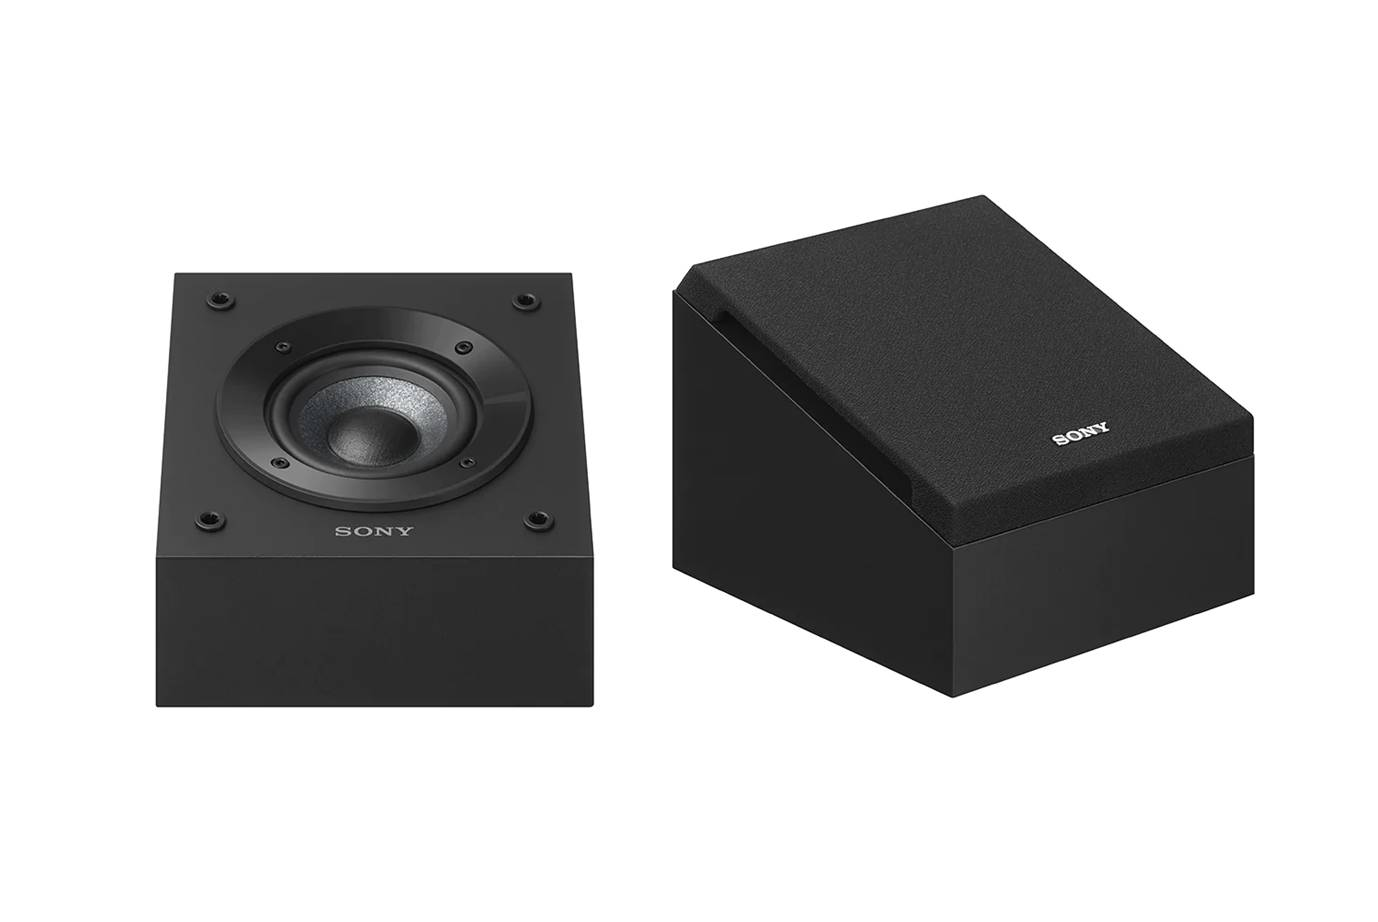 Sony SSCSE Dolby Atmos Speakers